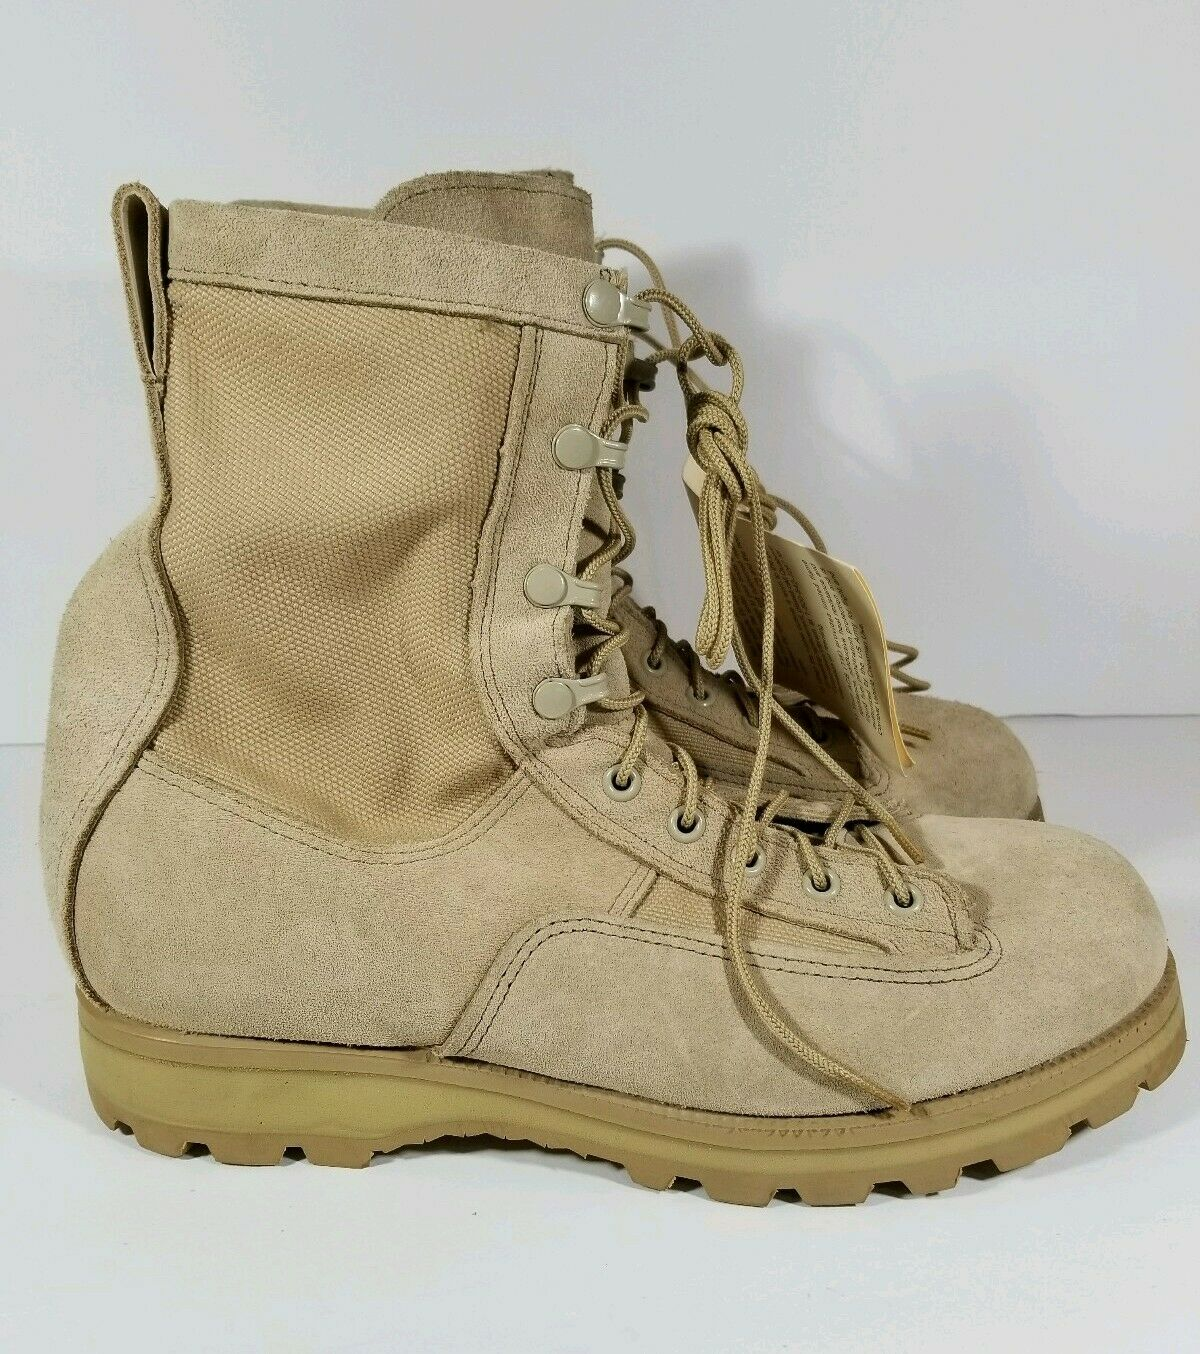 New McRAE Temperate Weather Army Desert Combat Boots Vibram Mens Size 9.5 W